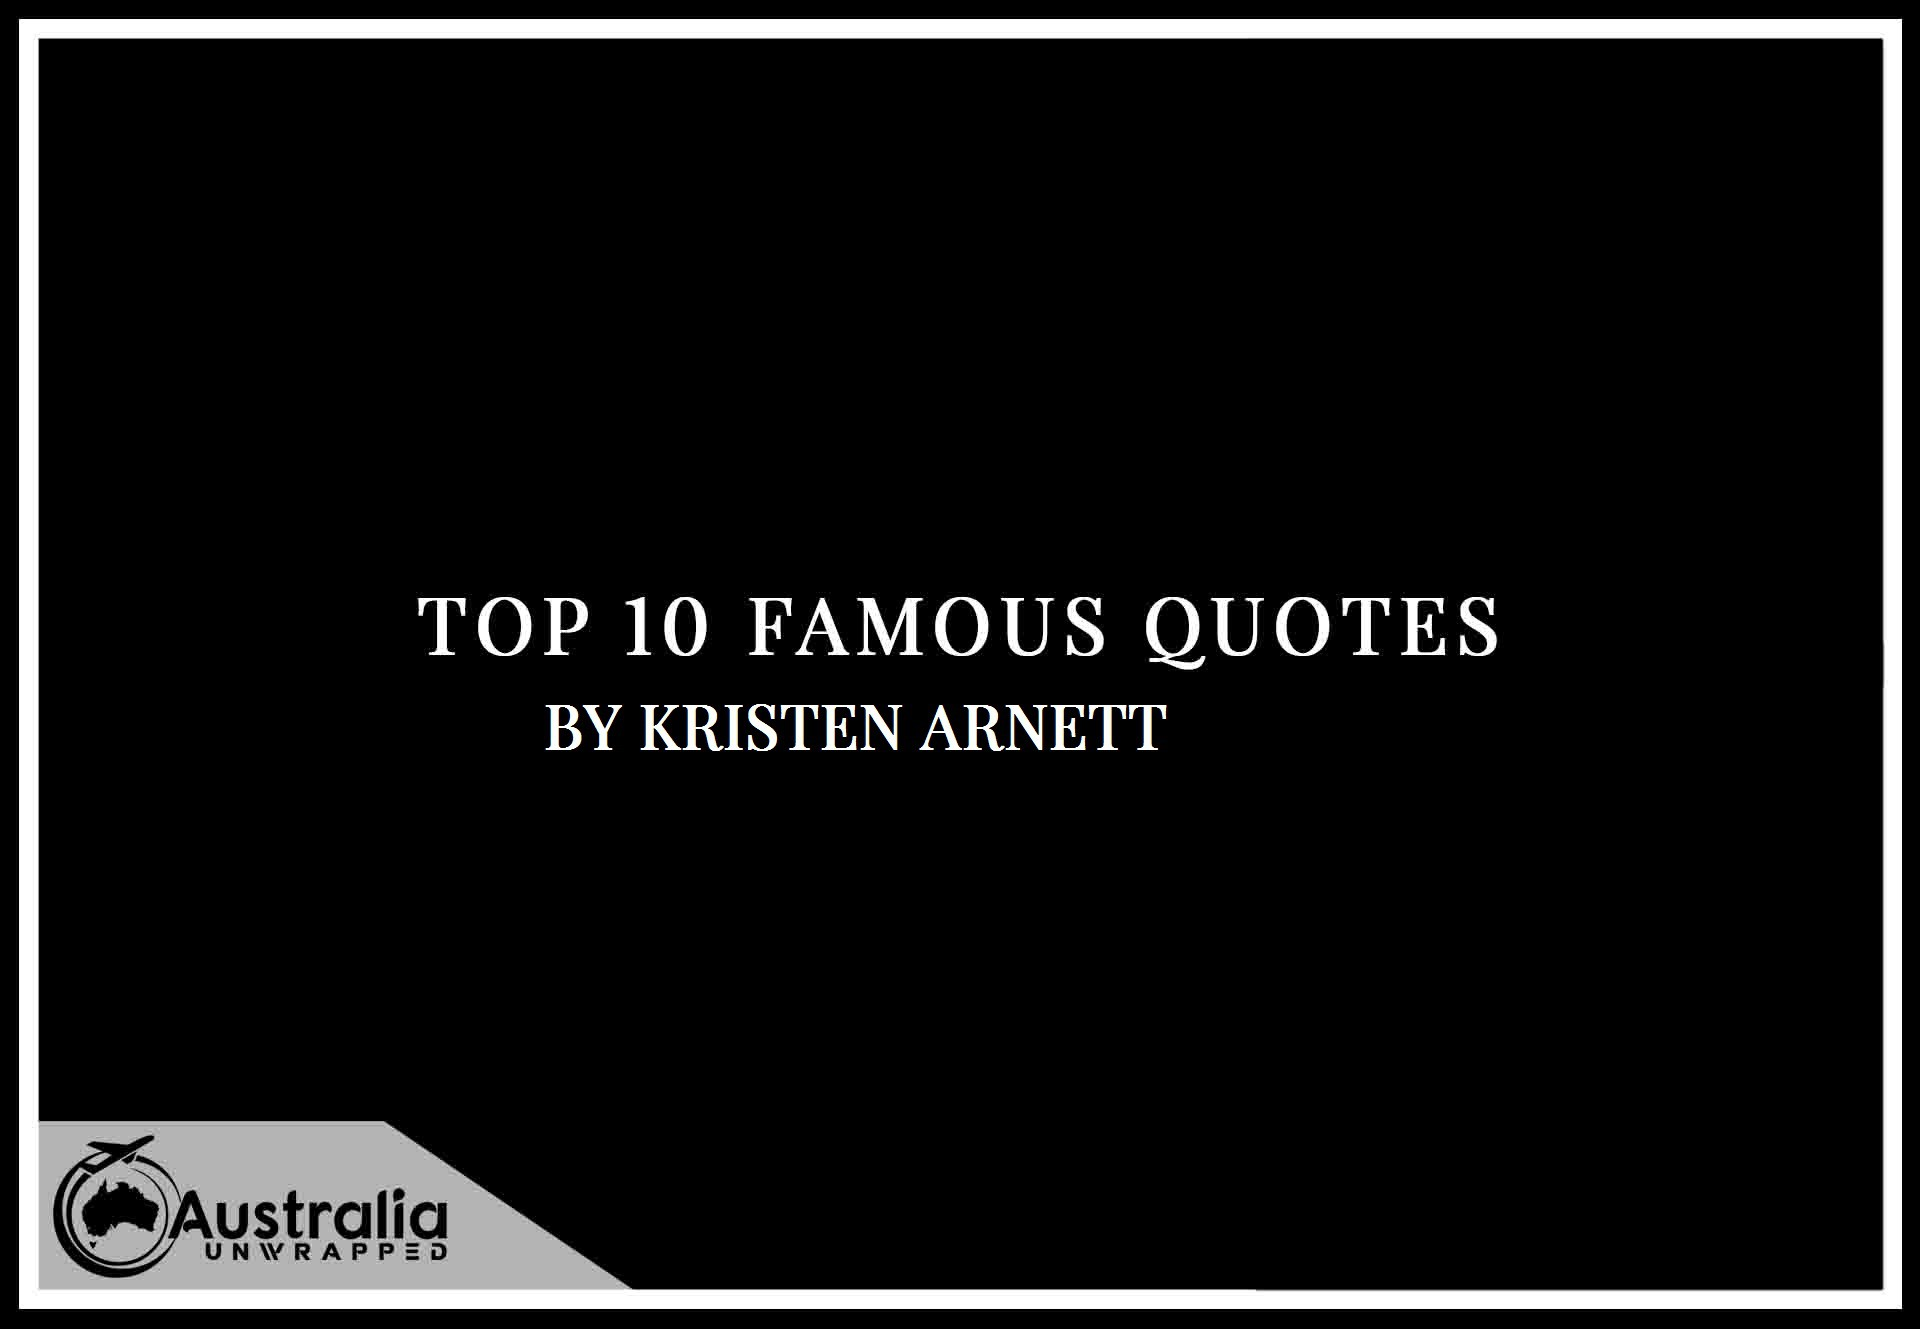 Kristen Arnett's Top 10 Popular and Famous Quotes